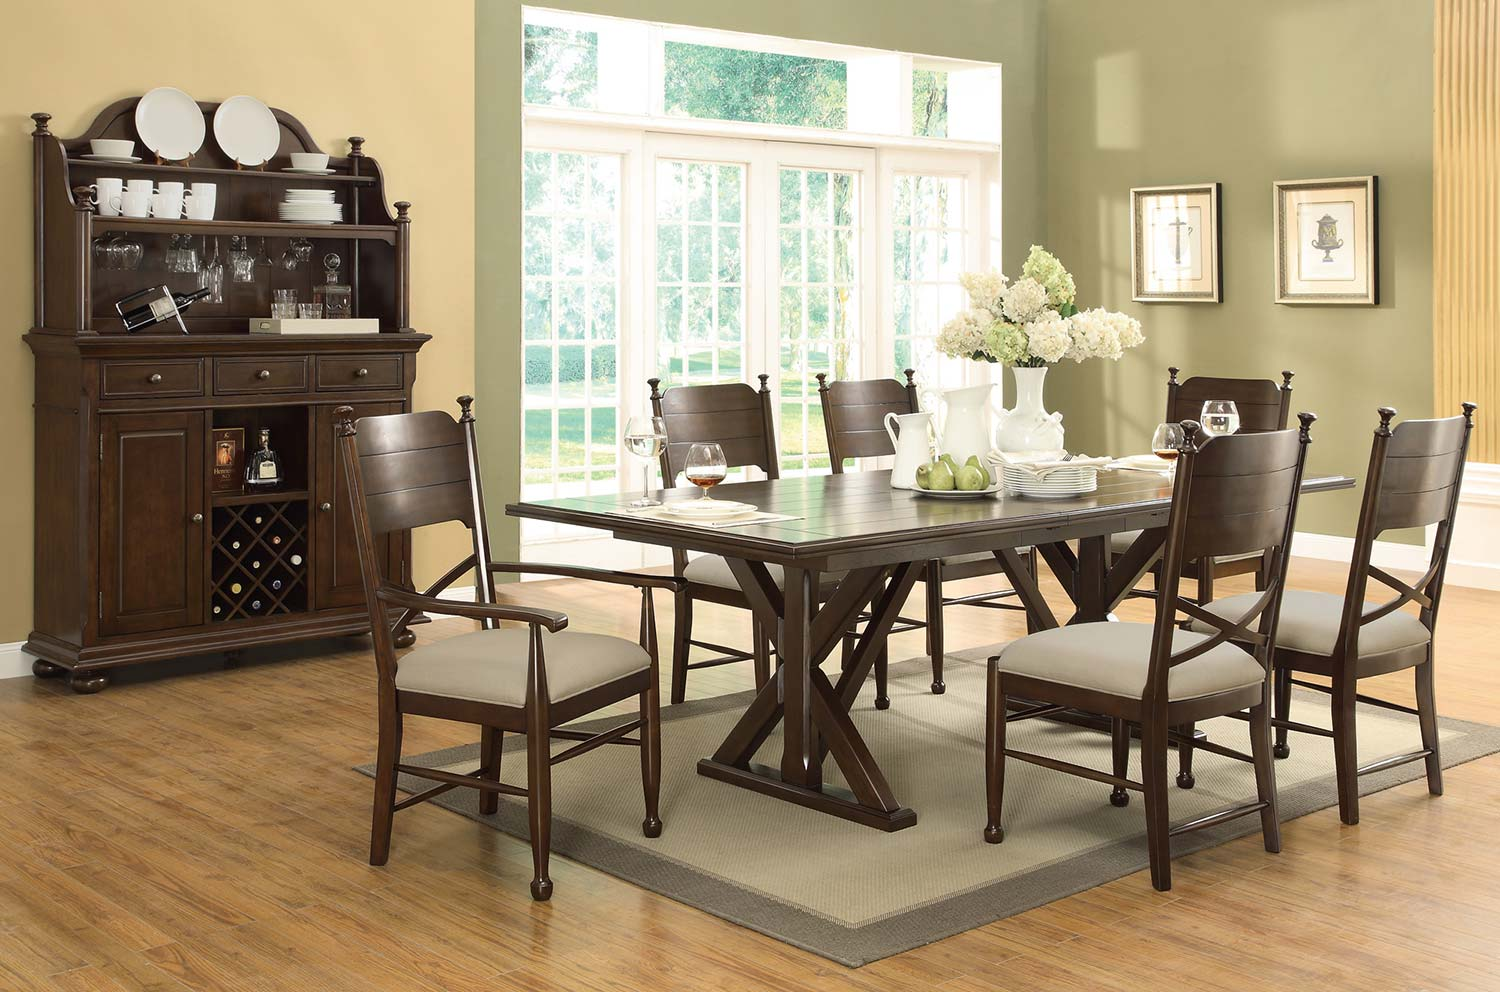 Coaster Camilla Dining Set - Brown Cherry